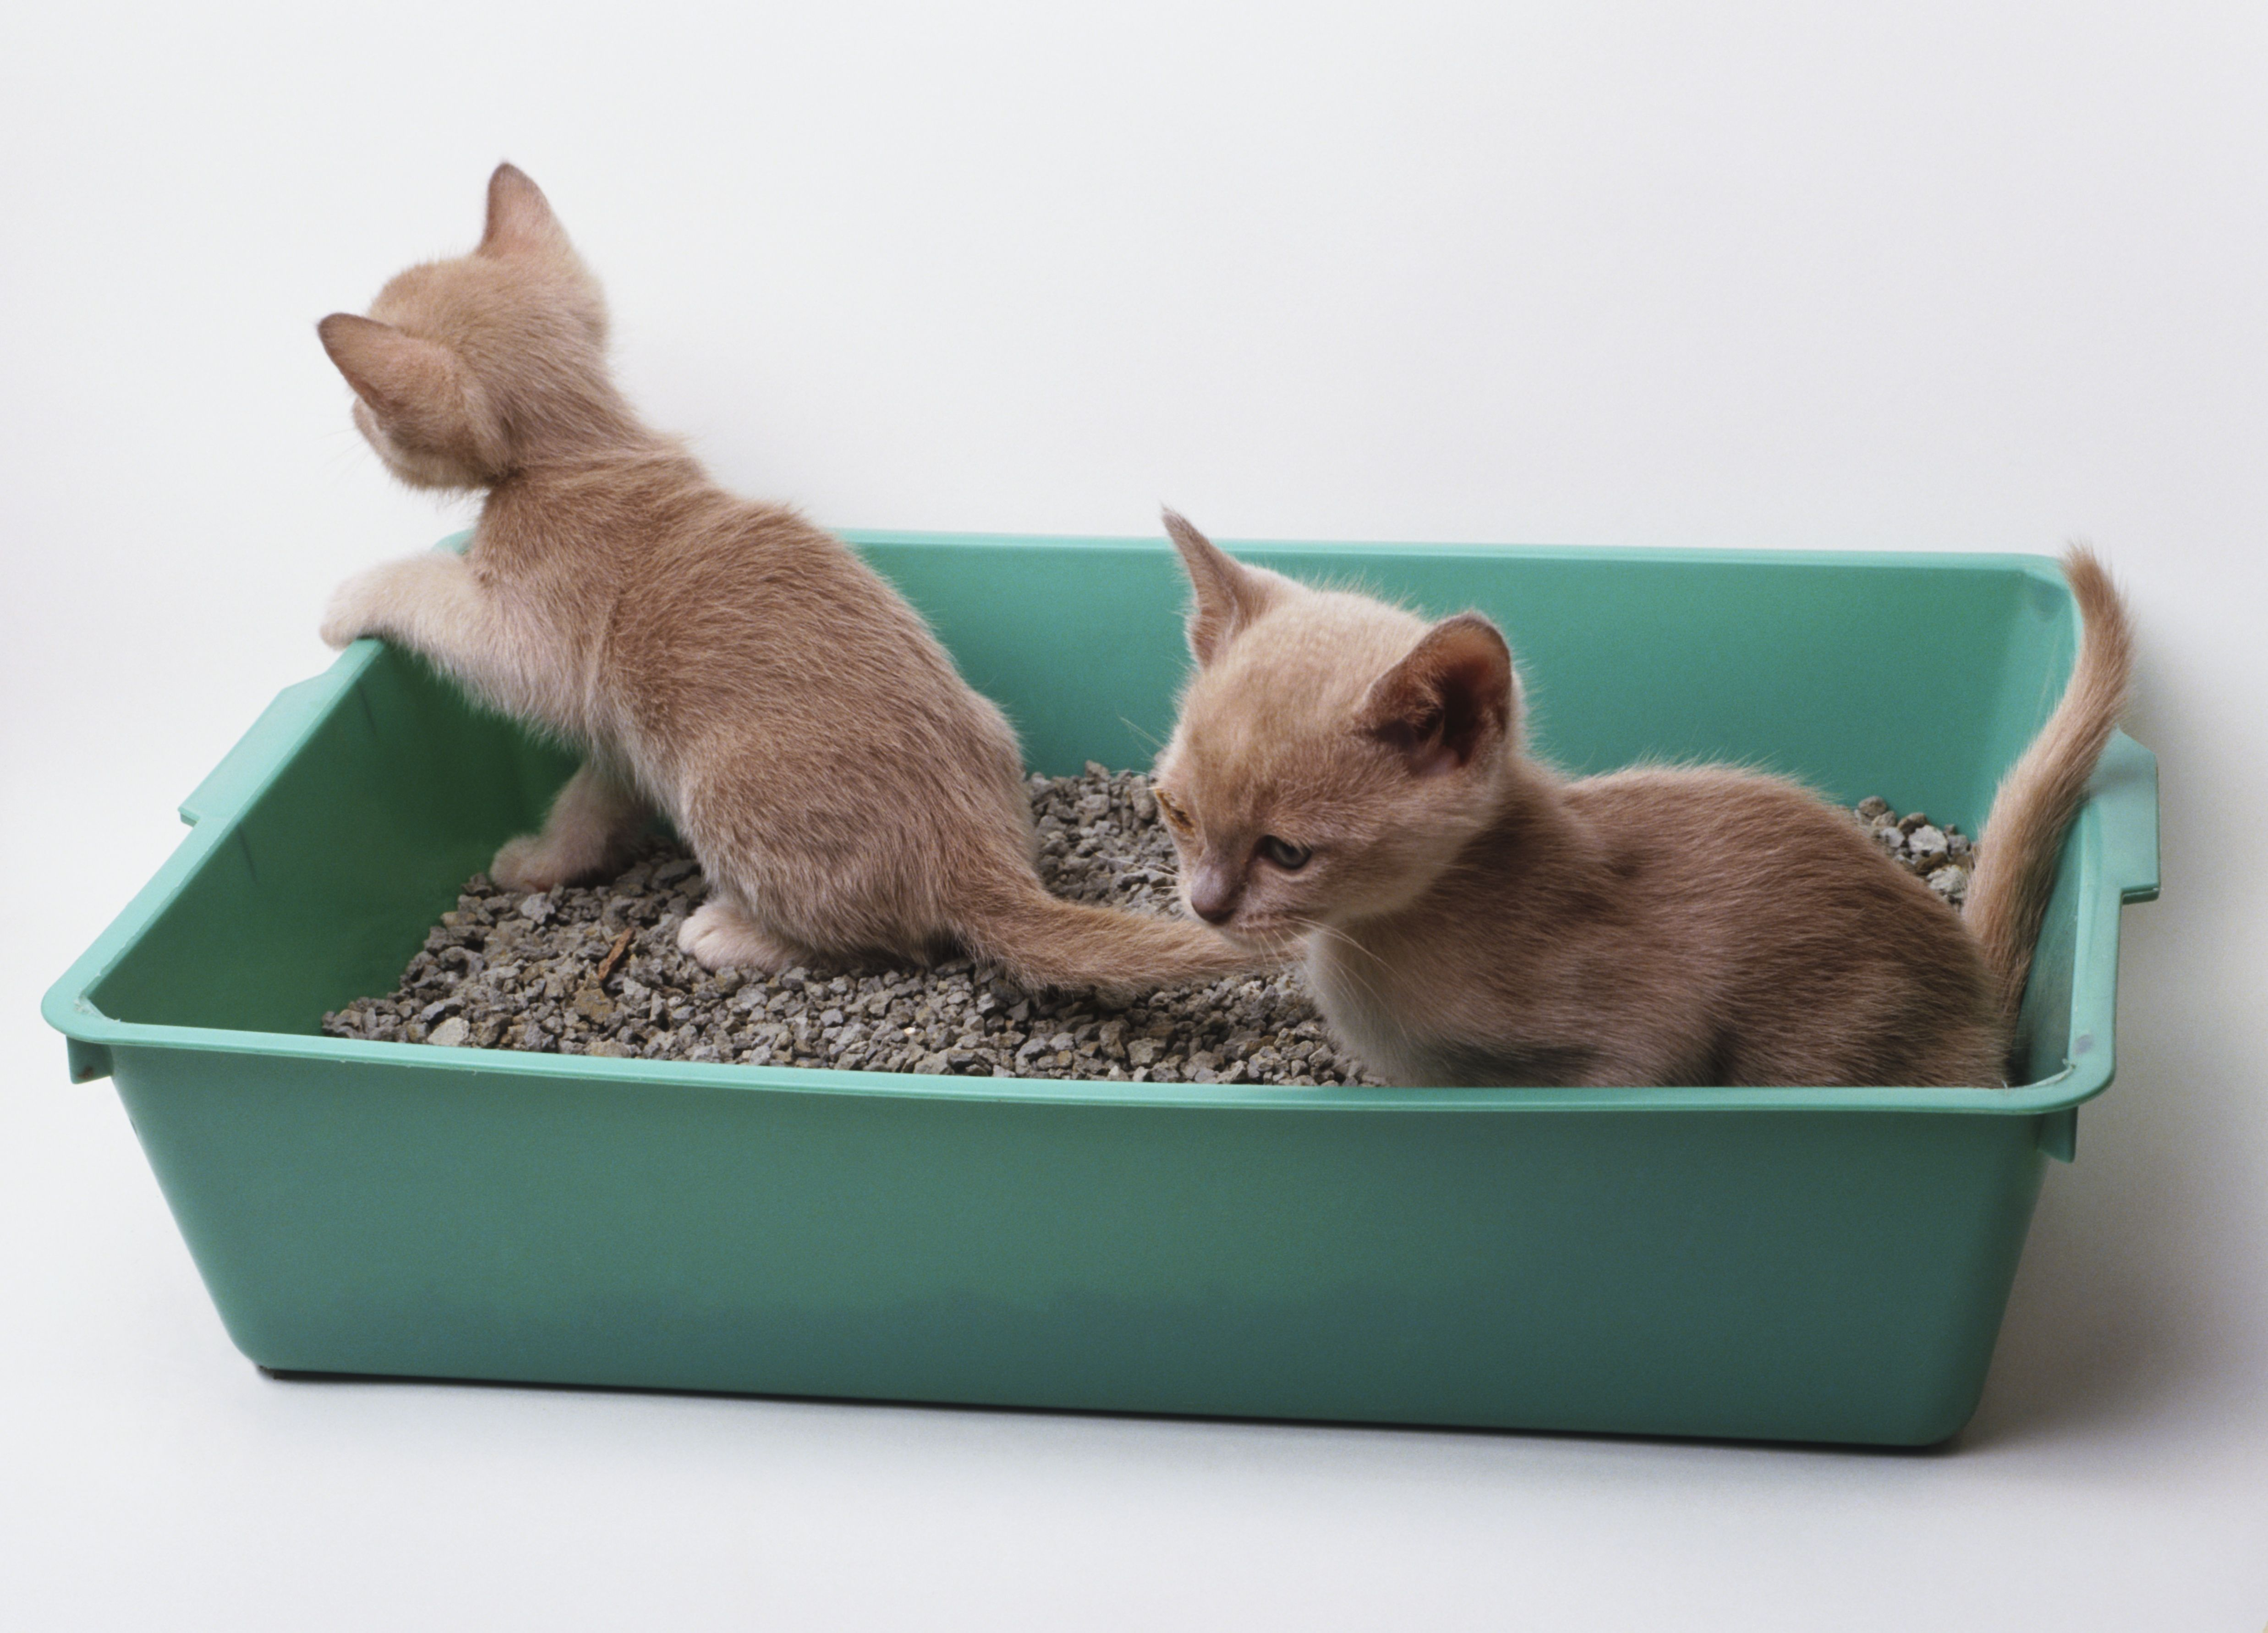 How To Train Your Kitten To Use The Litter Box Cat Training Litter Box Best Cat Litter Litter Box Training Kittens